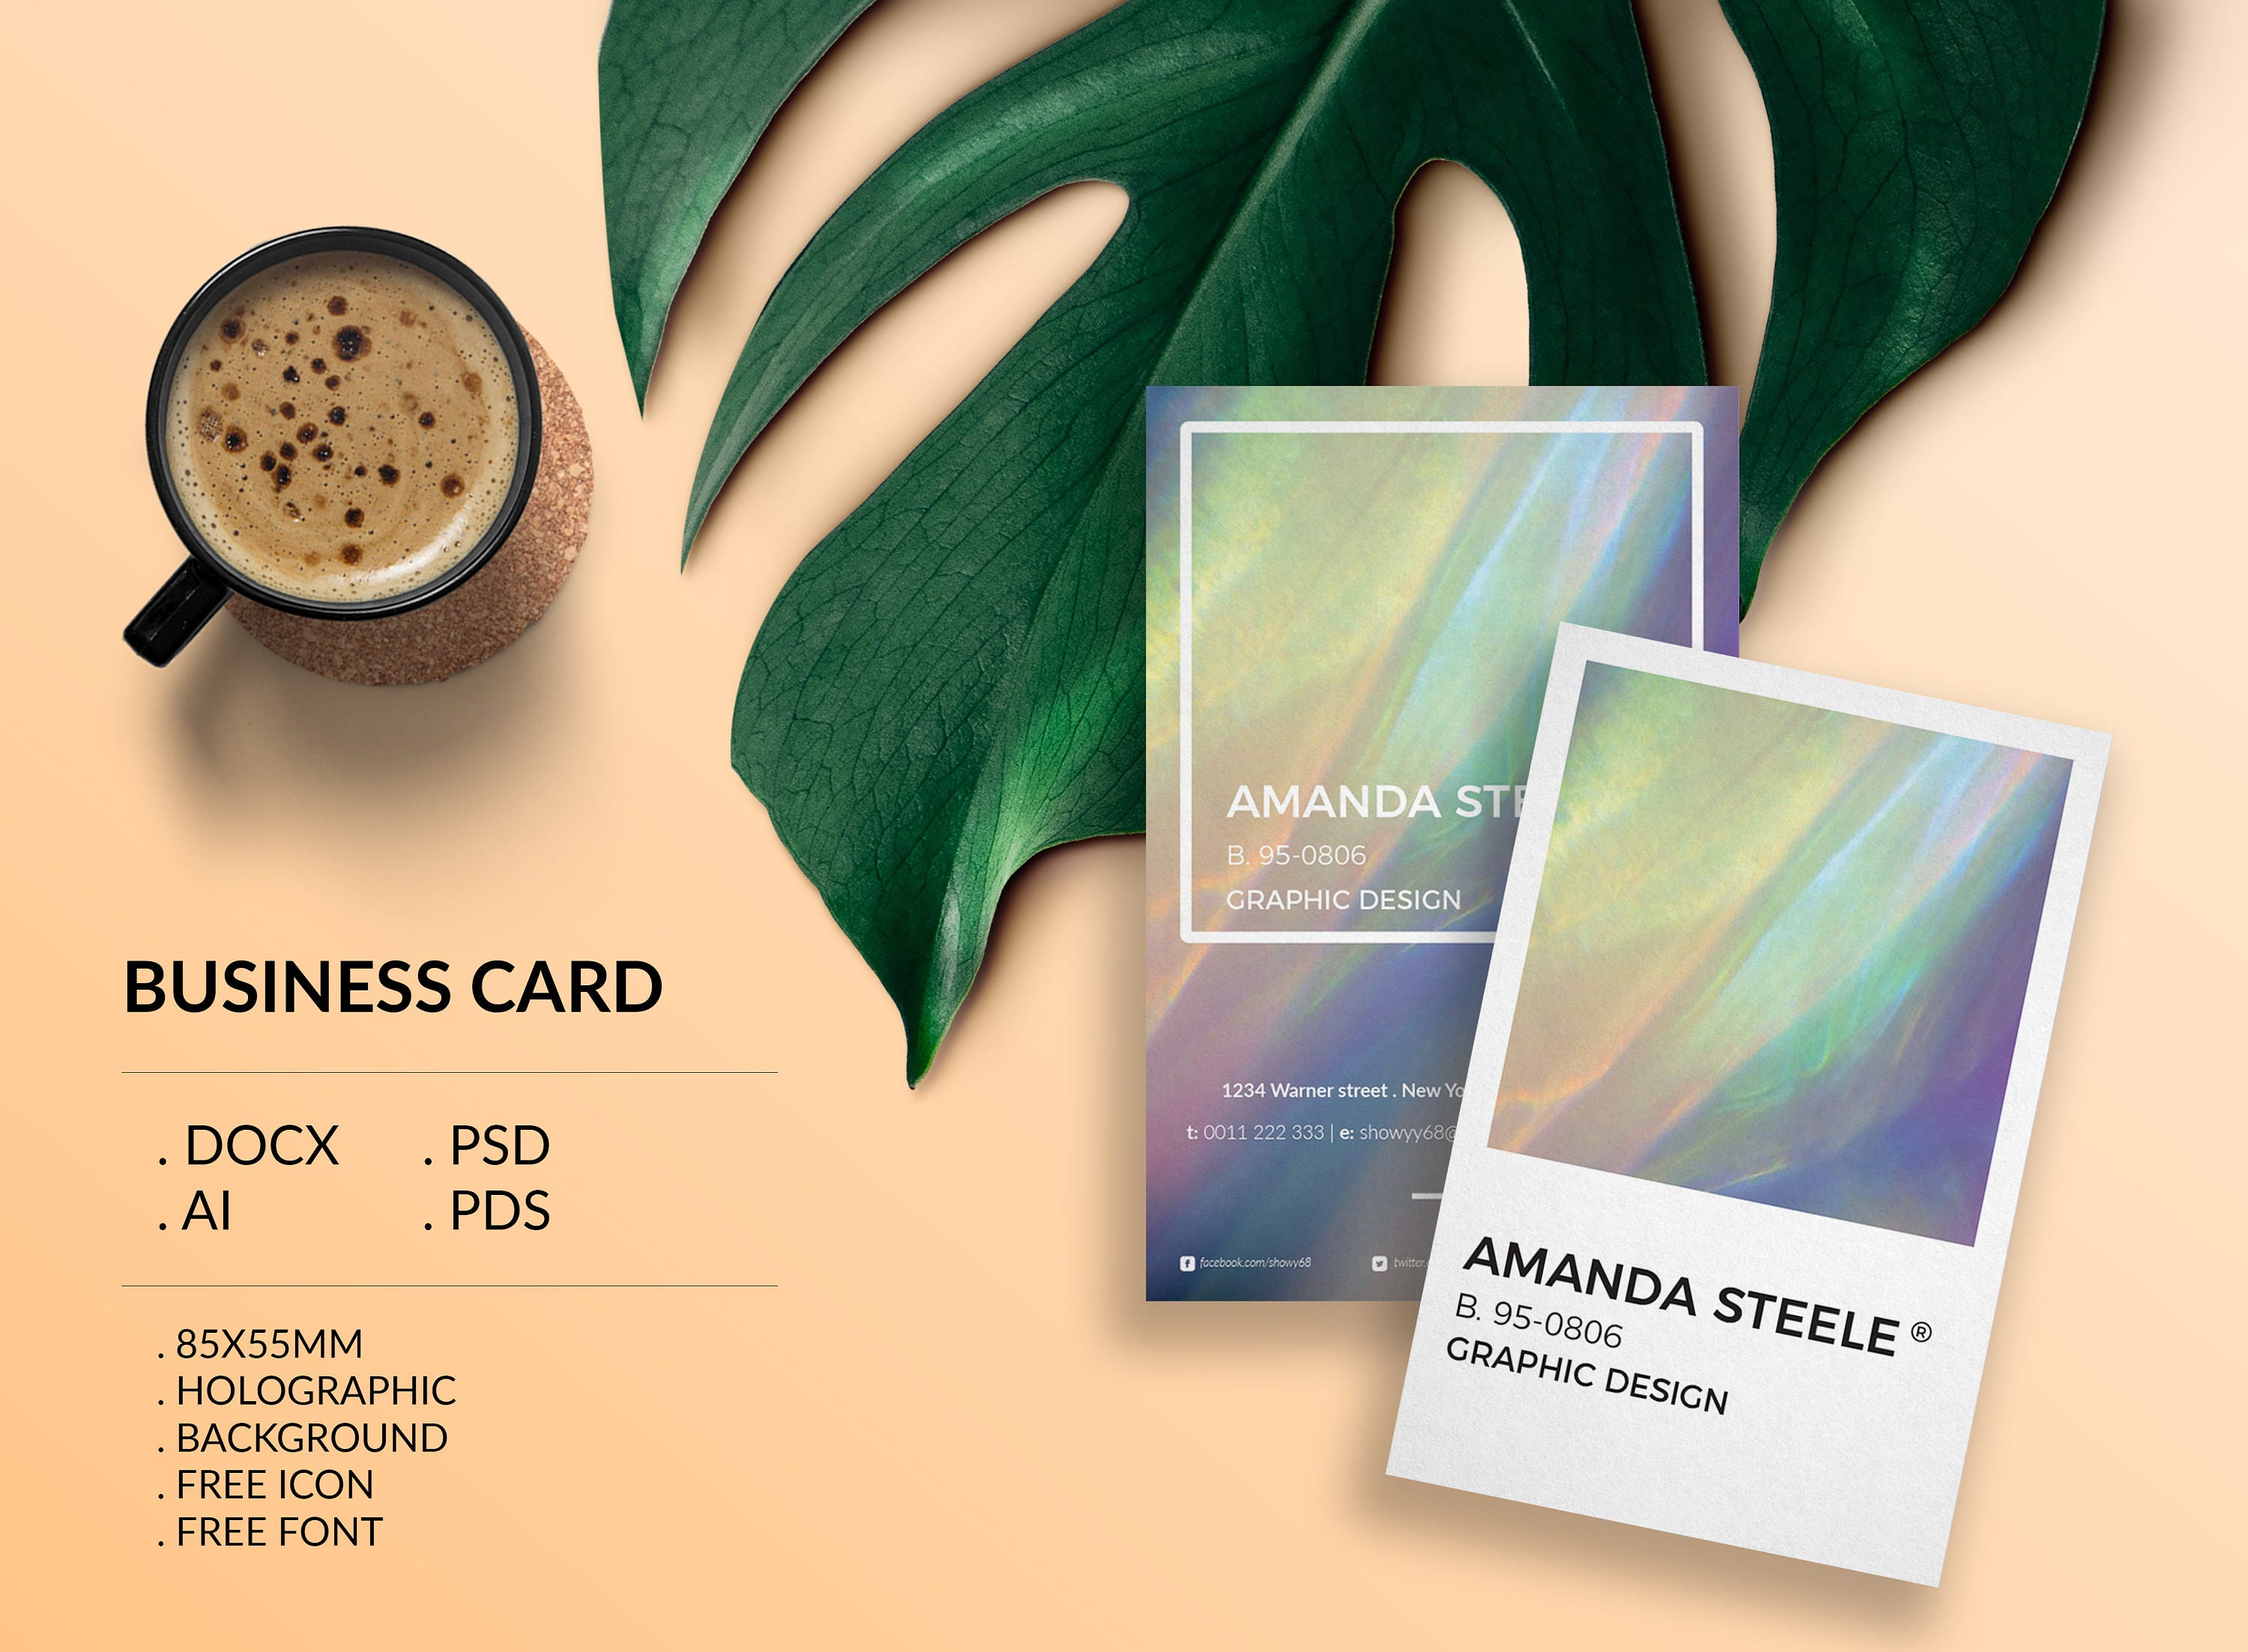 Holographic business card template creative card design holographic business card template creative card design morden business card calling card magicingreecefo Image collections